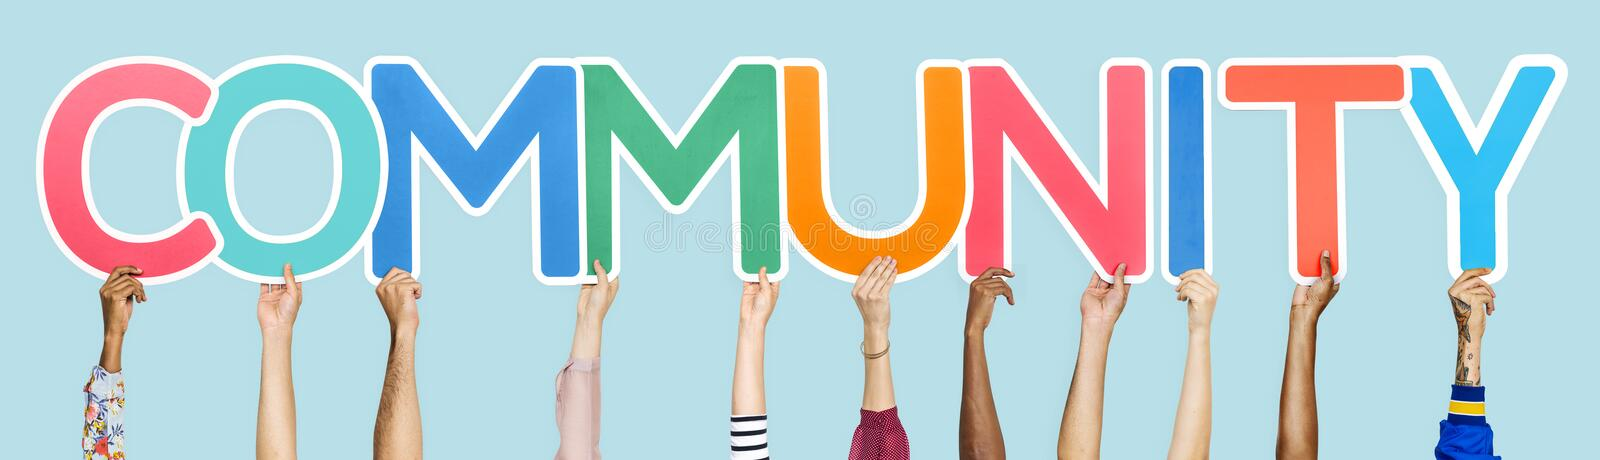 Colorful letters forming the word community stock photos